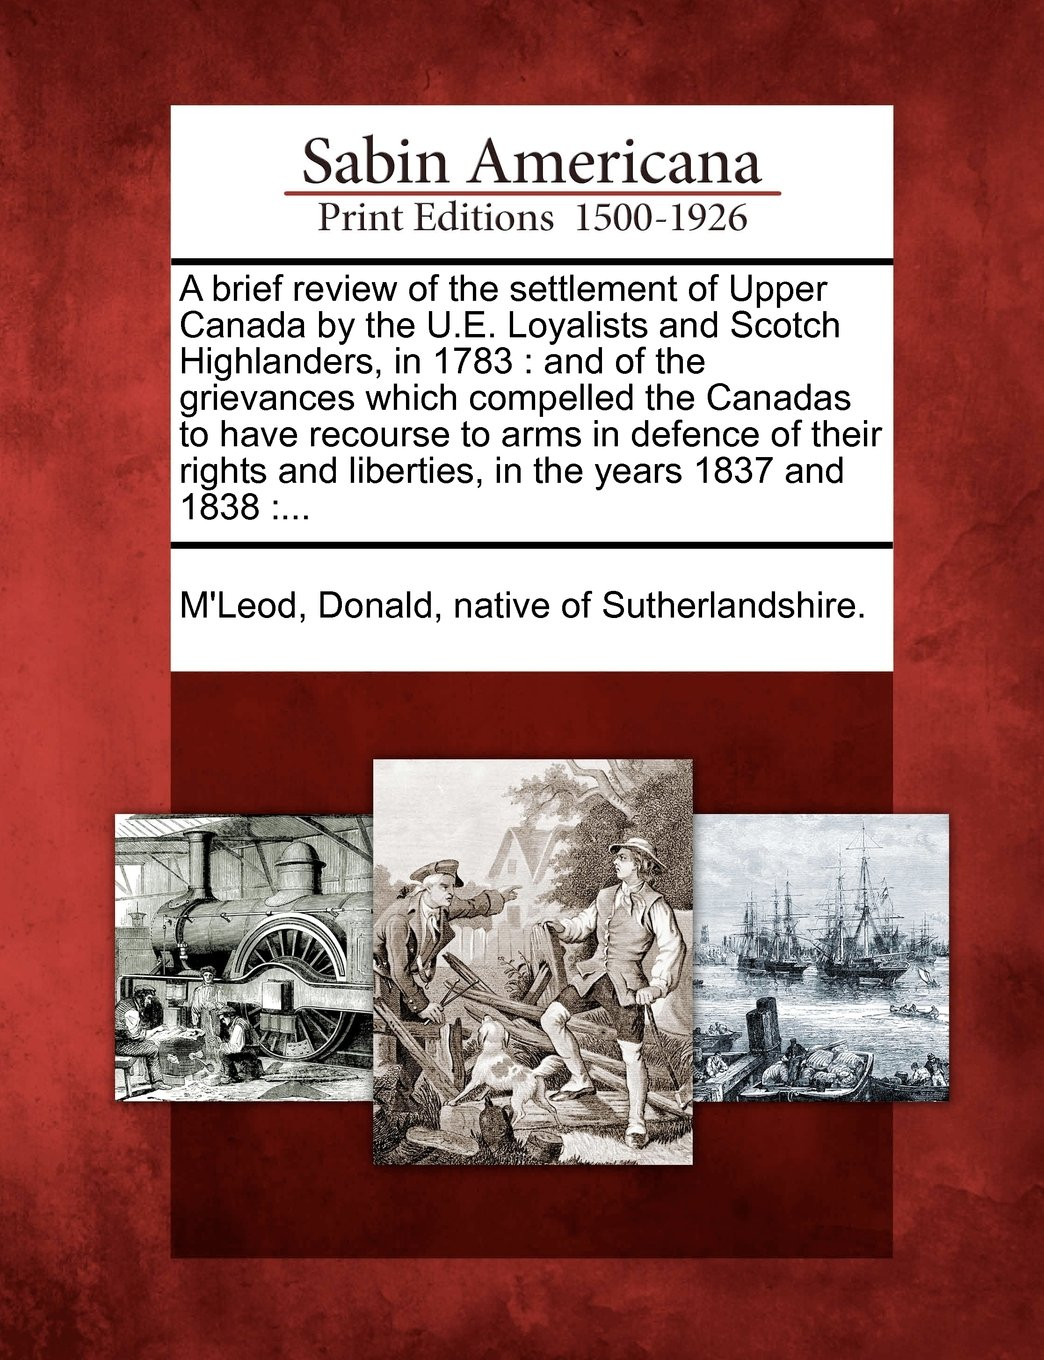 Download A brief review of the settlement of Upper Canada by the U.E. Loyalists and Scotch Highlanders, in 1783: and of the grievances which compelled the ... liberties, in the years 1837 and 1838 :... pdf epub